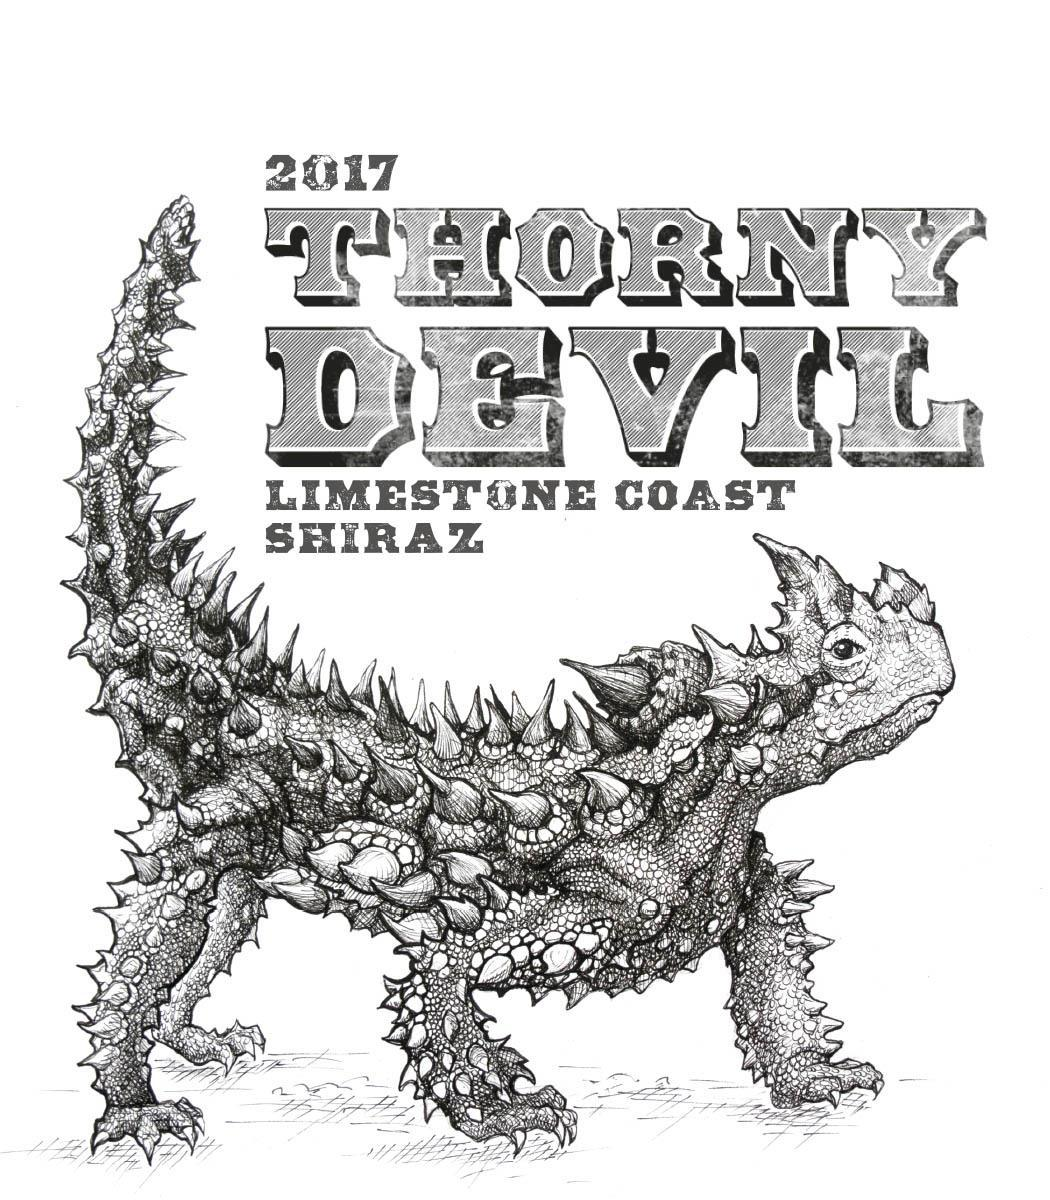 Thorny Devil Limestone Coast Shiraz